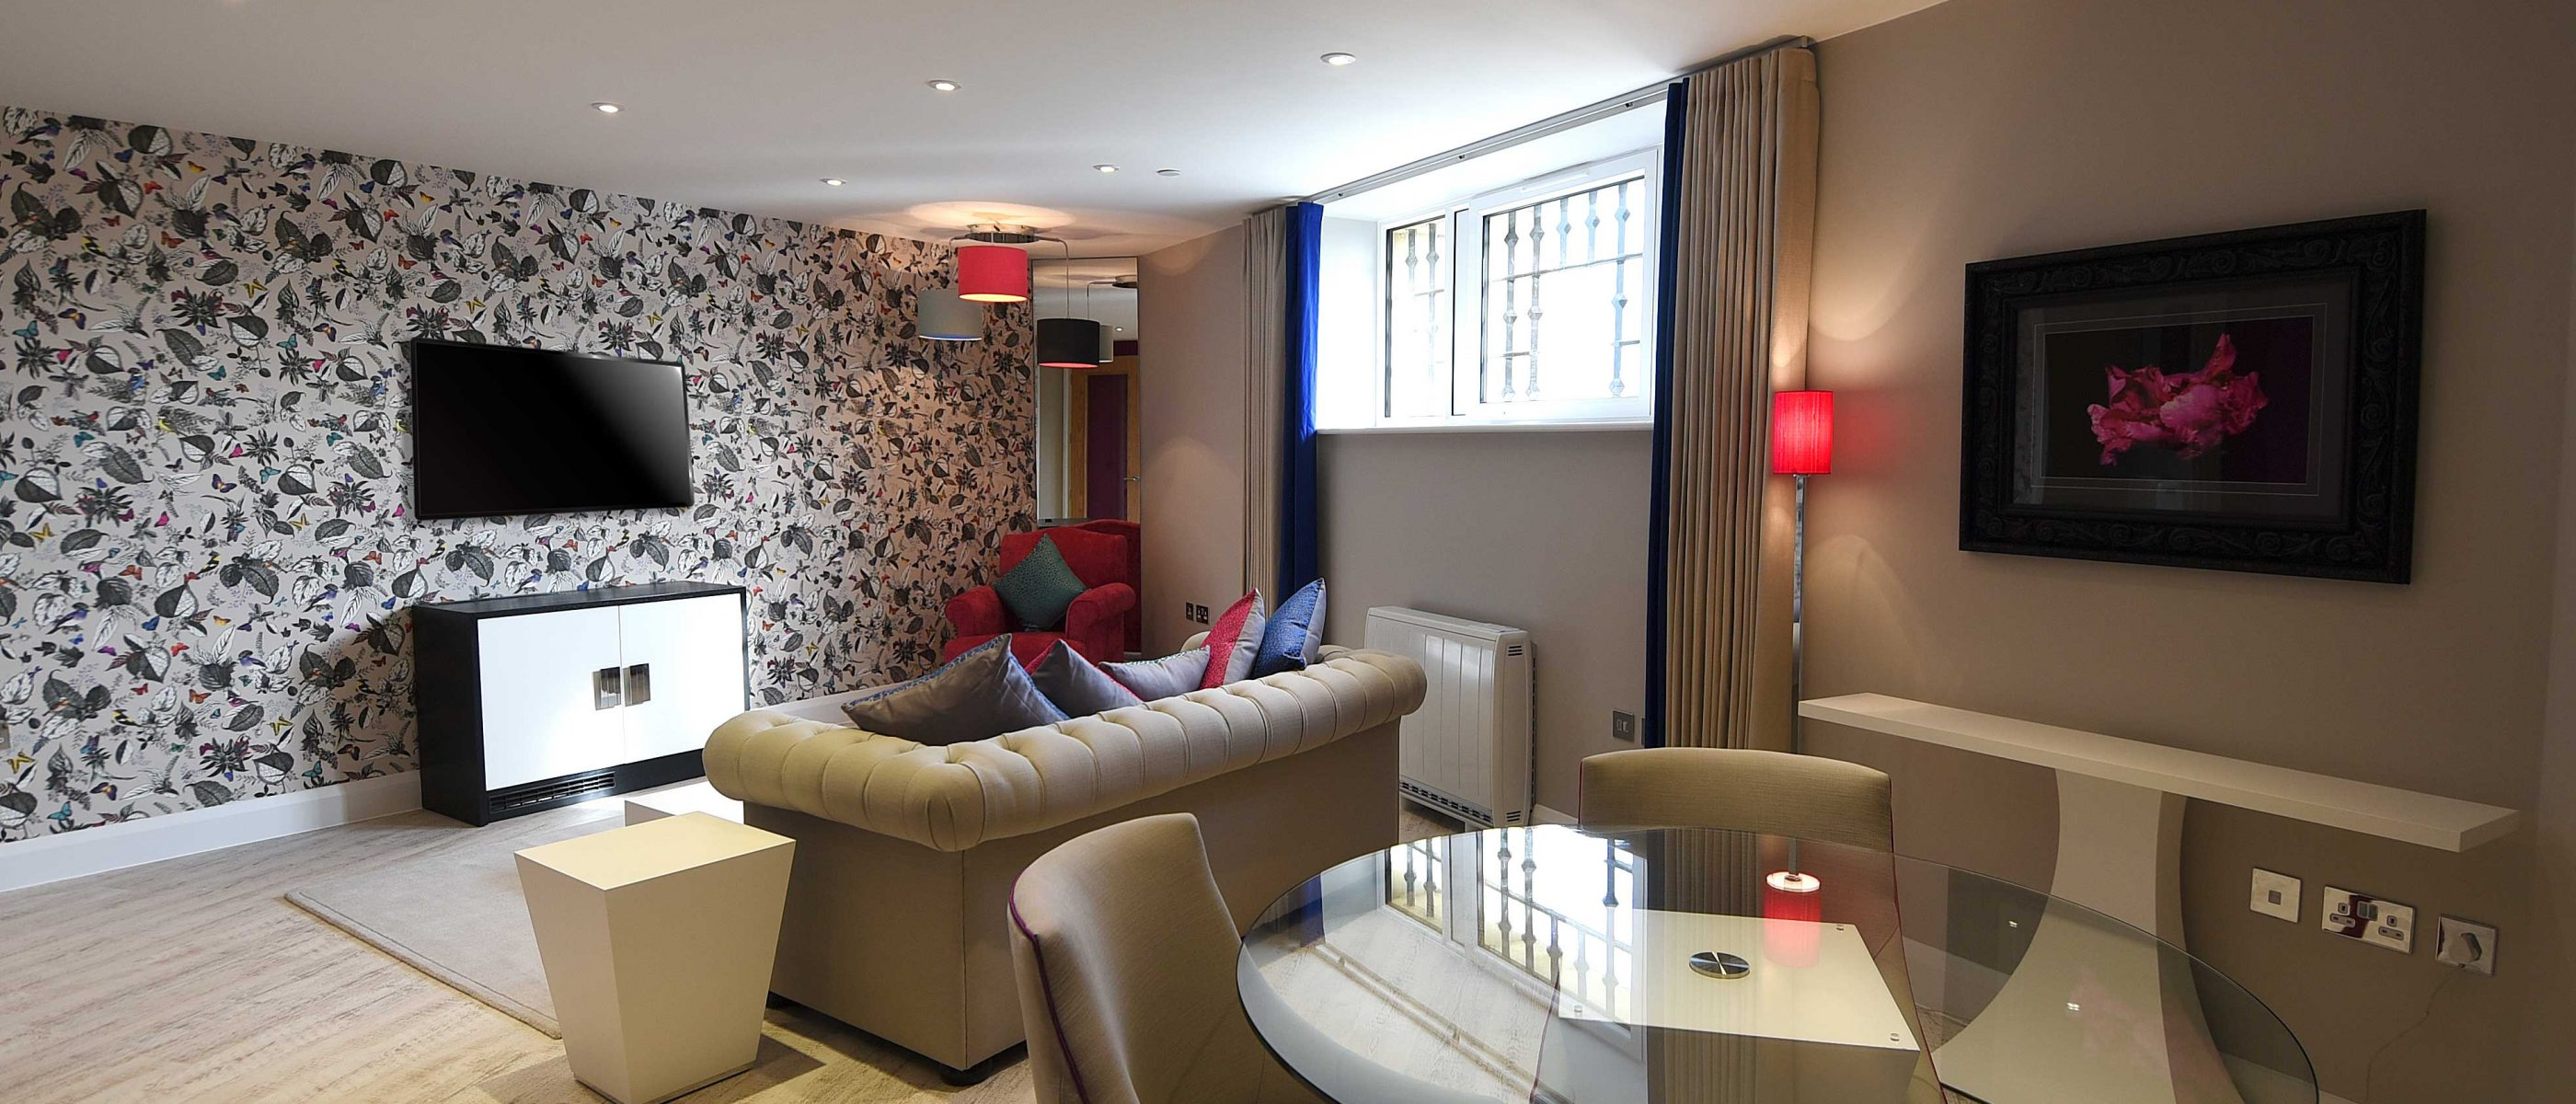 The lounge in the Thames Suite: a one bedroom luxury serviced apartment at The Old Gaol, by the River Thames in Abingdon, near Oxford. Ideal accommodation for corporate or holiday short lets